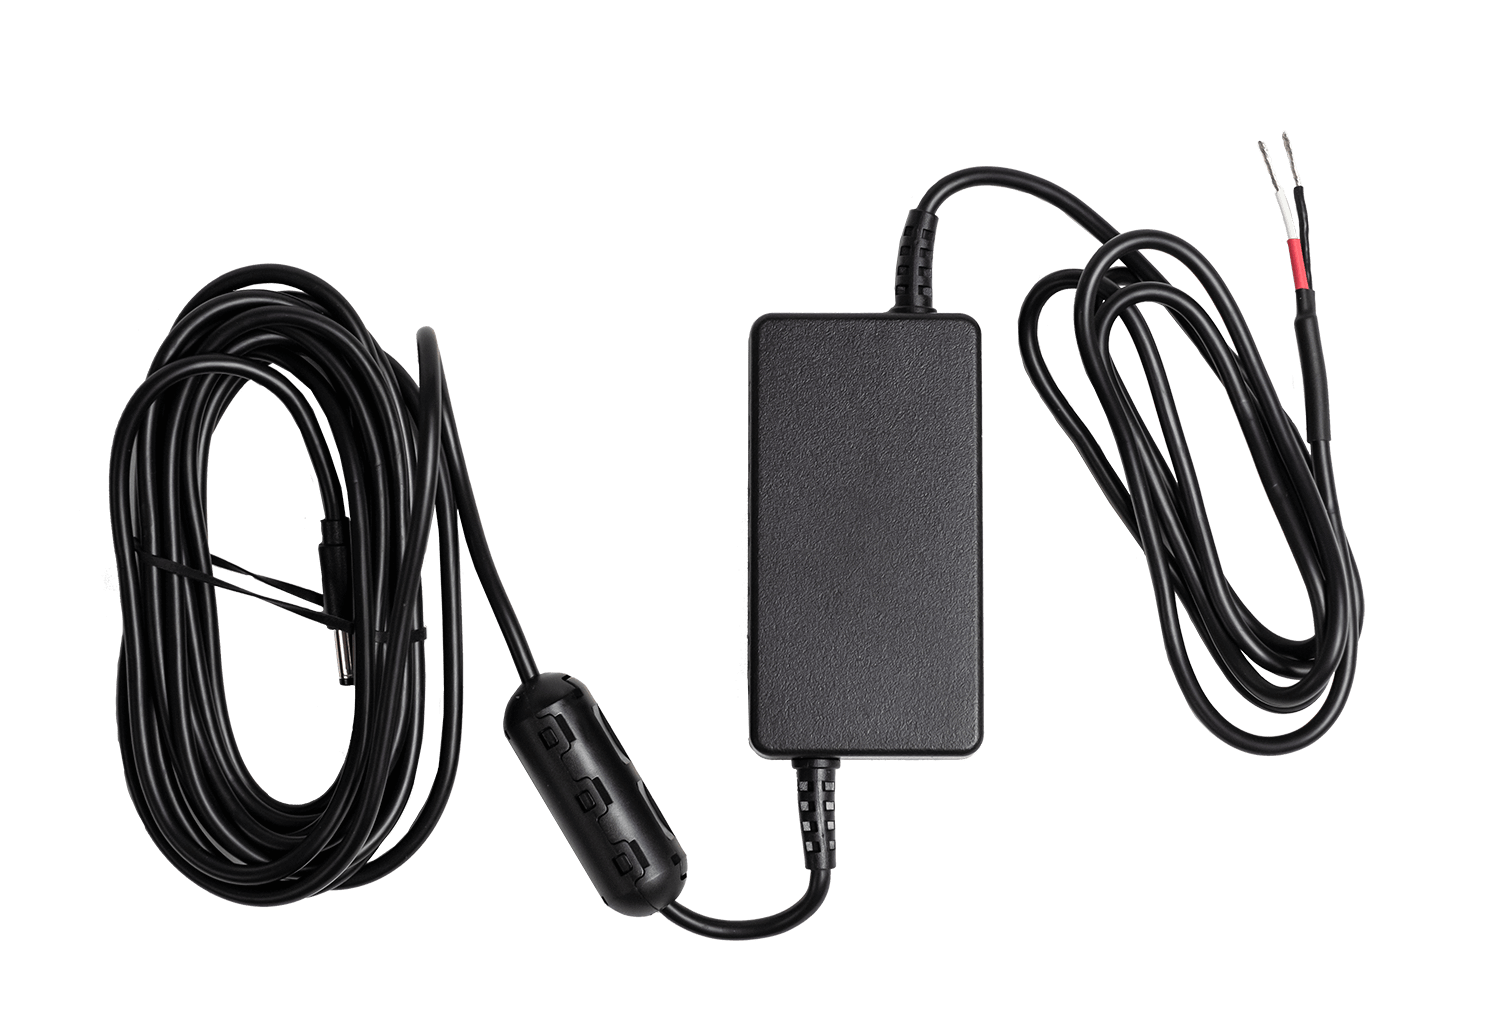 Power_Supply_850022_web | weBoost cell phone signal booster